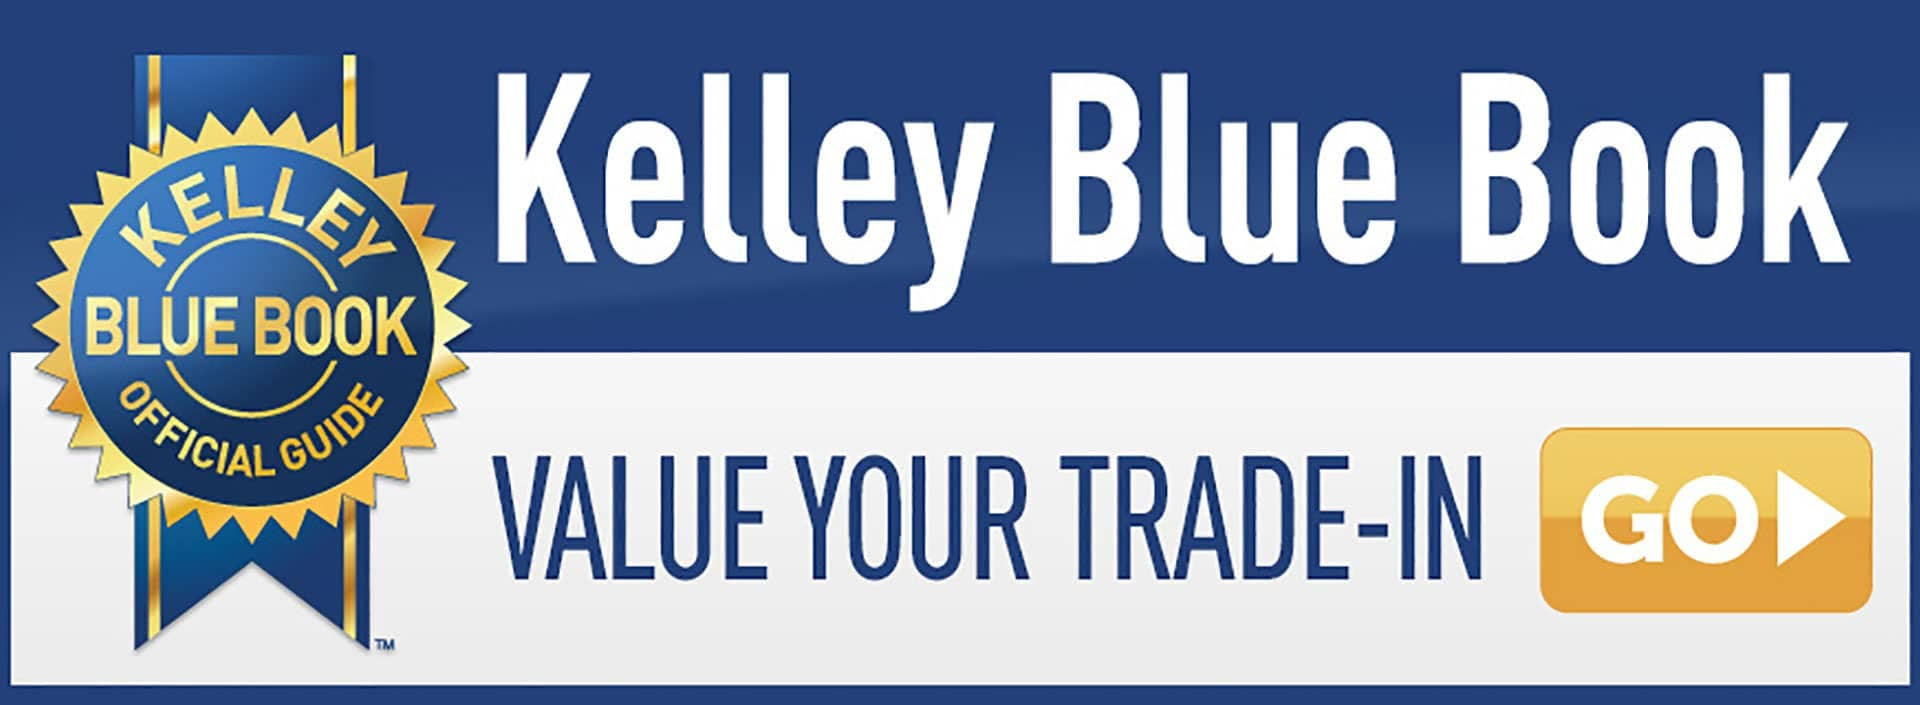 Kelley-Blue-Book-Desktop